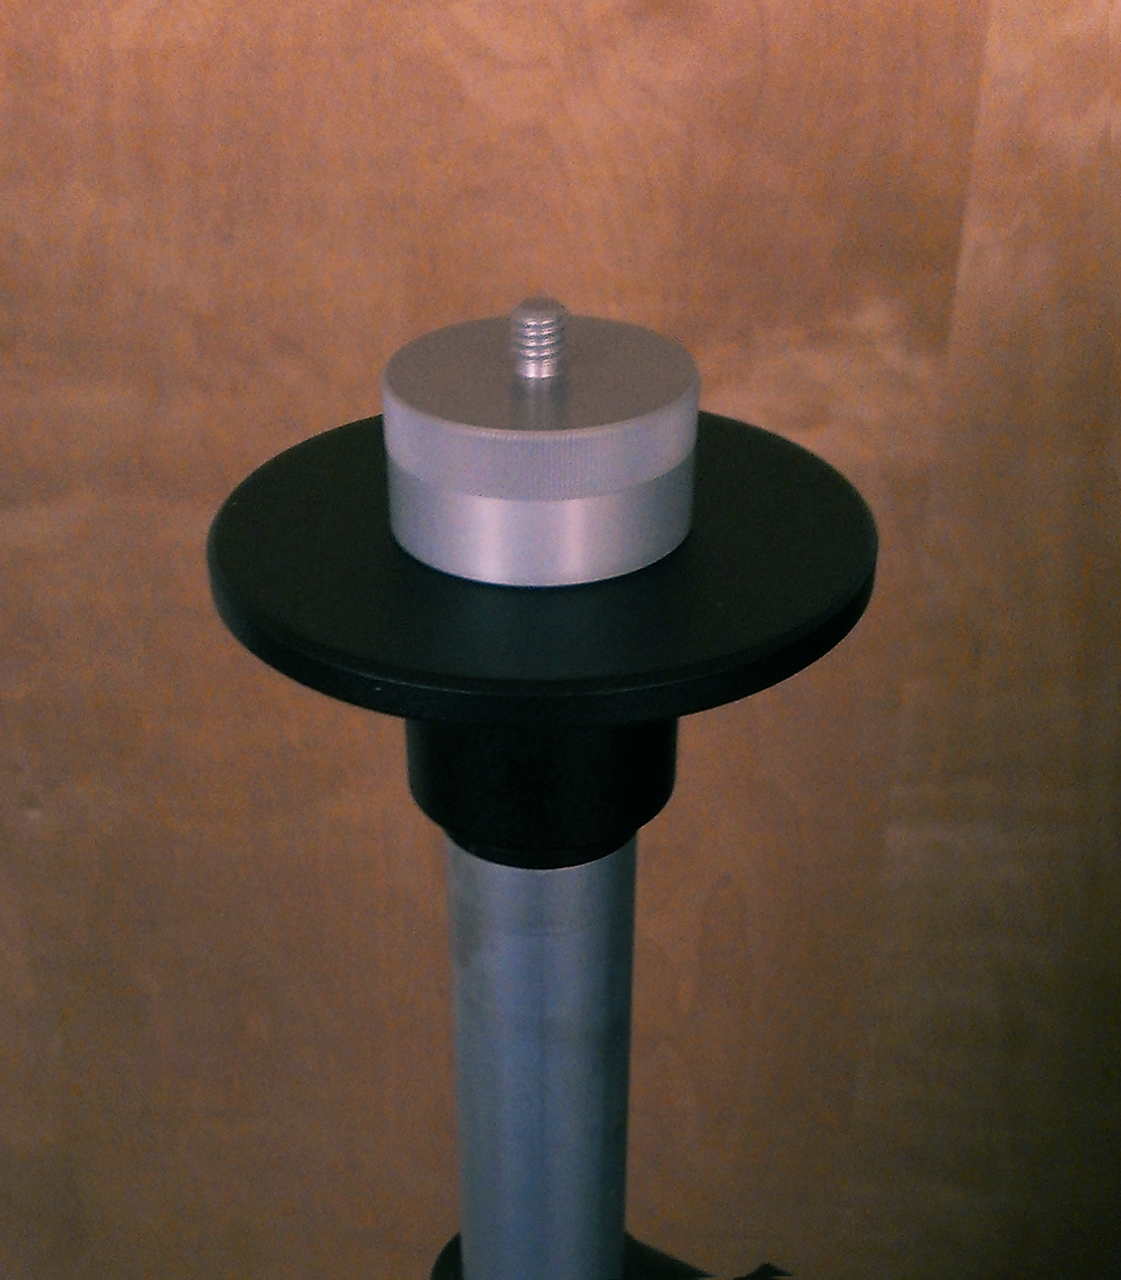 3D surveying tripod with 3/8in adapter